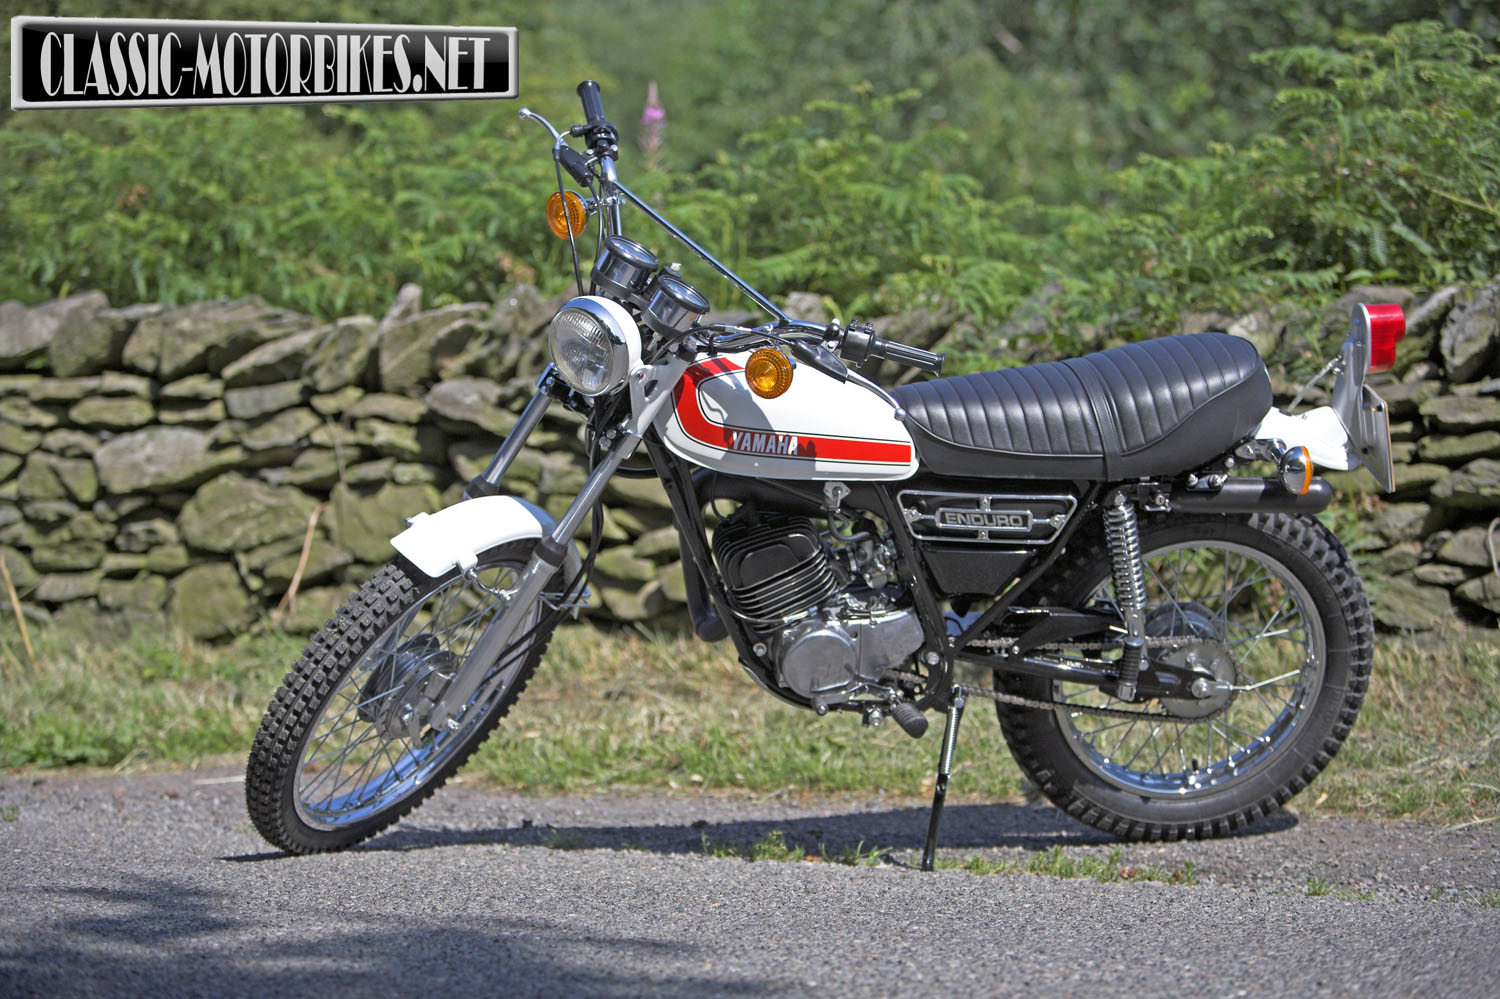 Yamaha Enduro Wiring Diagram Content Resource Of Dt175 Road Test Classic Motorbikes 1972 125 1975 400